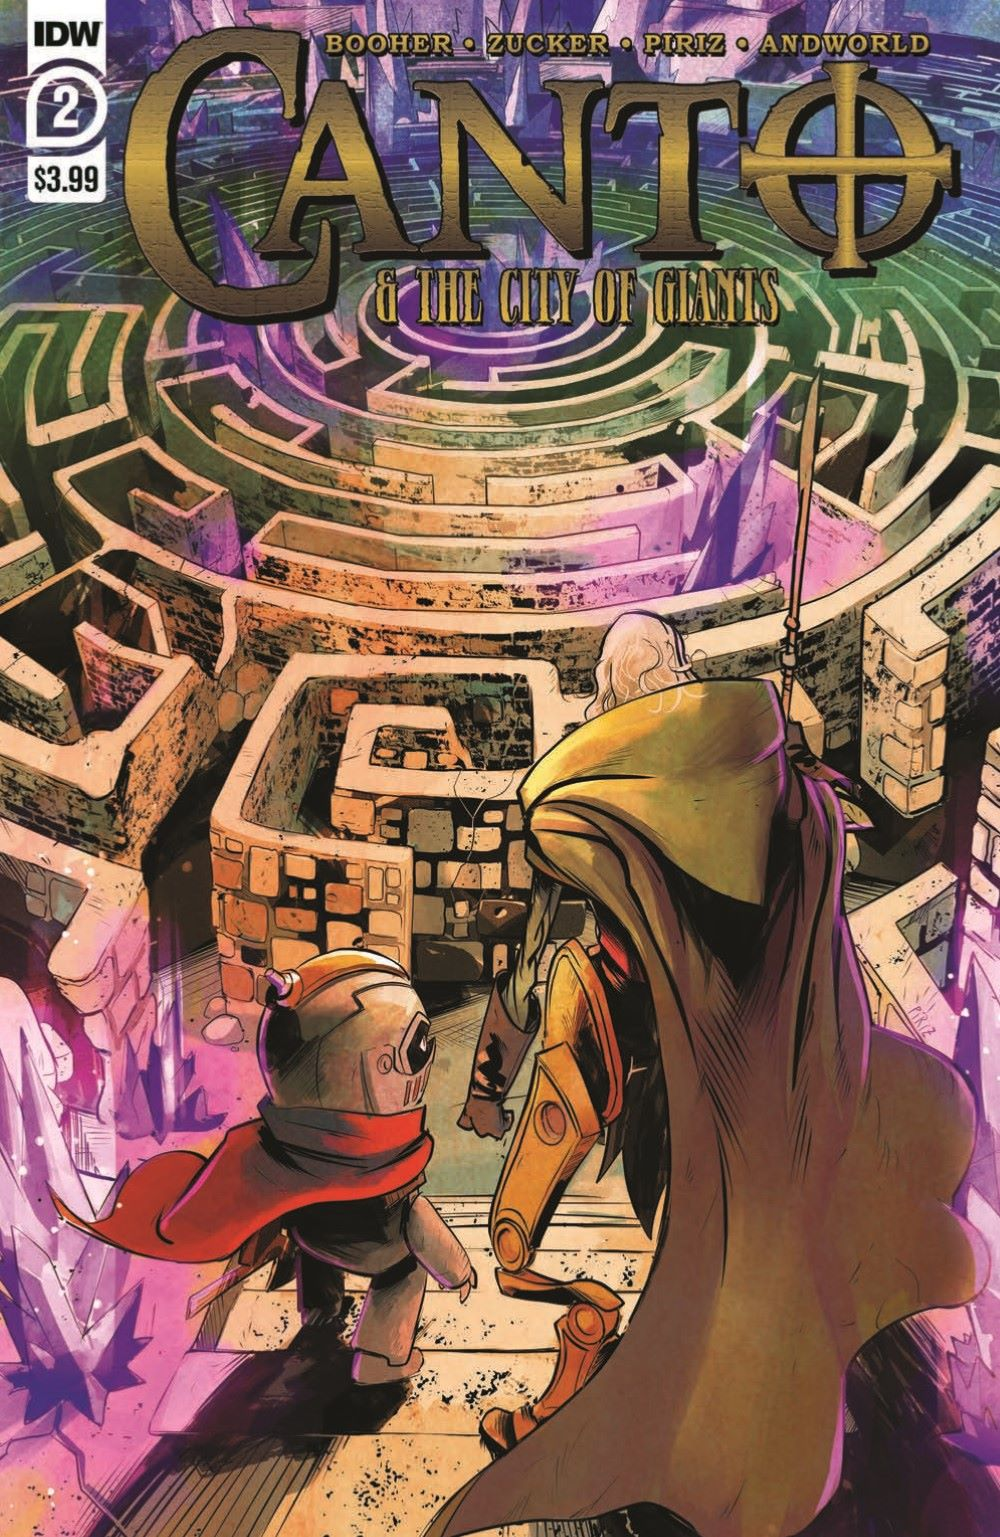 Canto-CoG02_pr-1 ComicList Previews: CANTO AND THE CITY OF GIANTS #2 (OF 3)